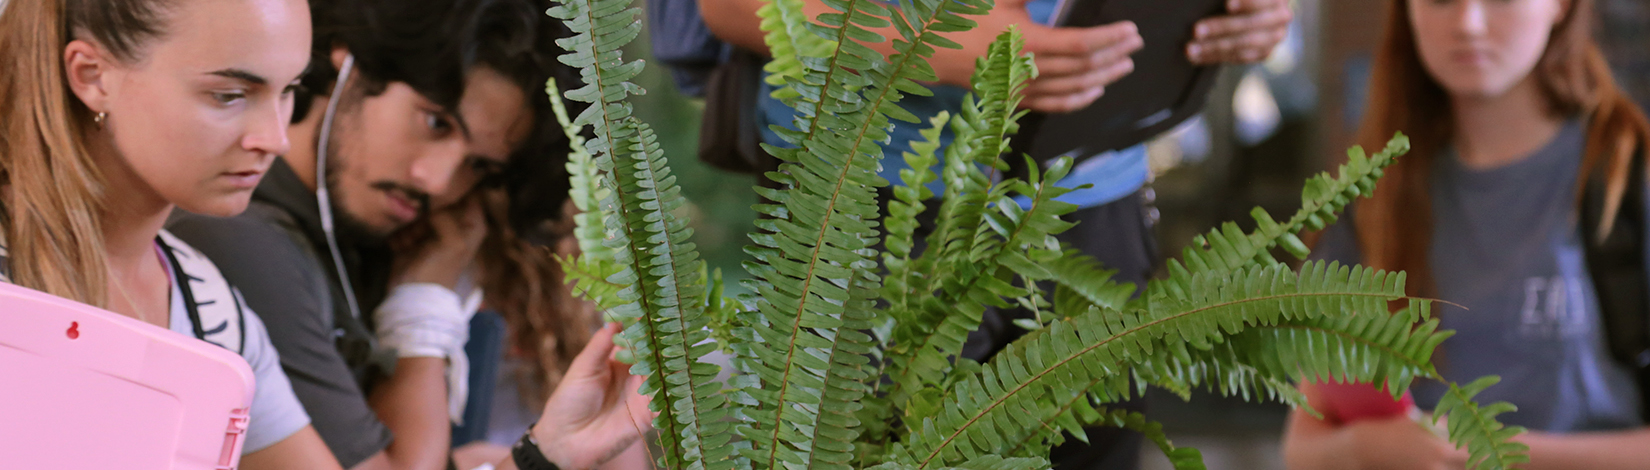 student examines a fern